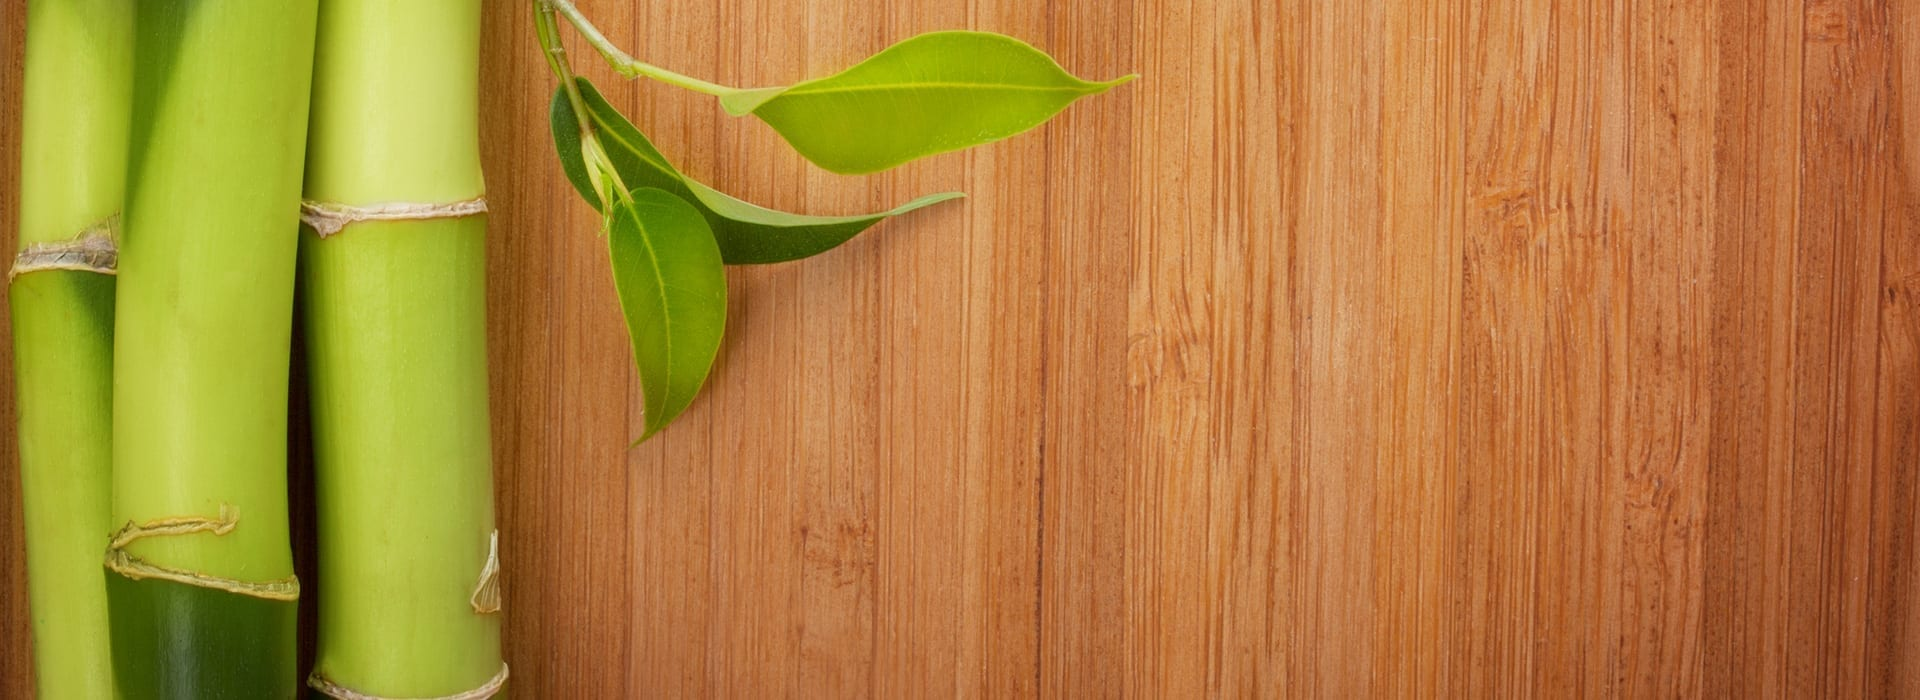 The Best Green Flooring Products for Your Family